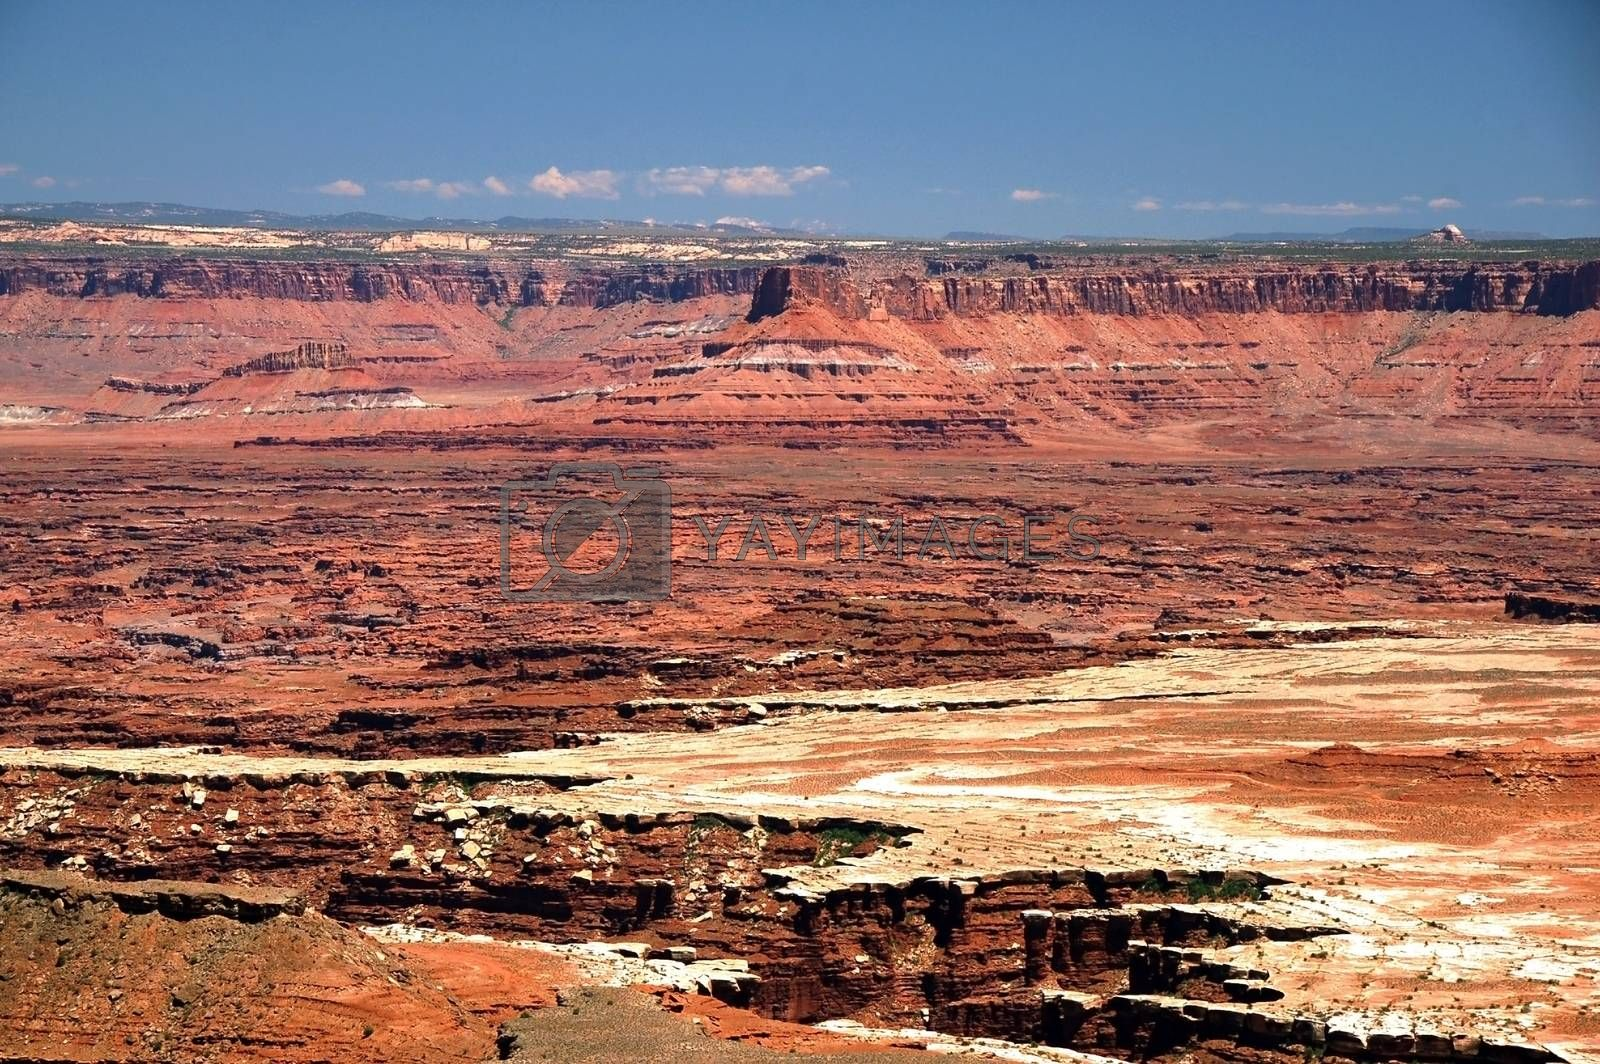 Canyonlands Landscape. Canyonland National Park in the Utah State. USA. Panoramic Photo.